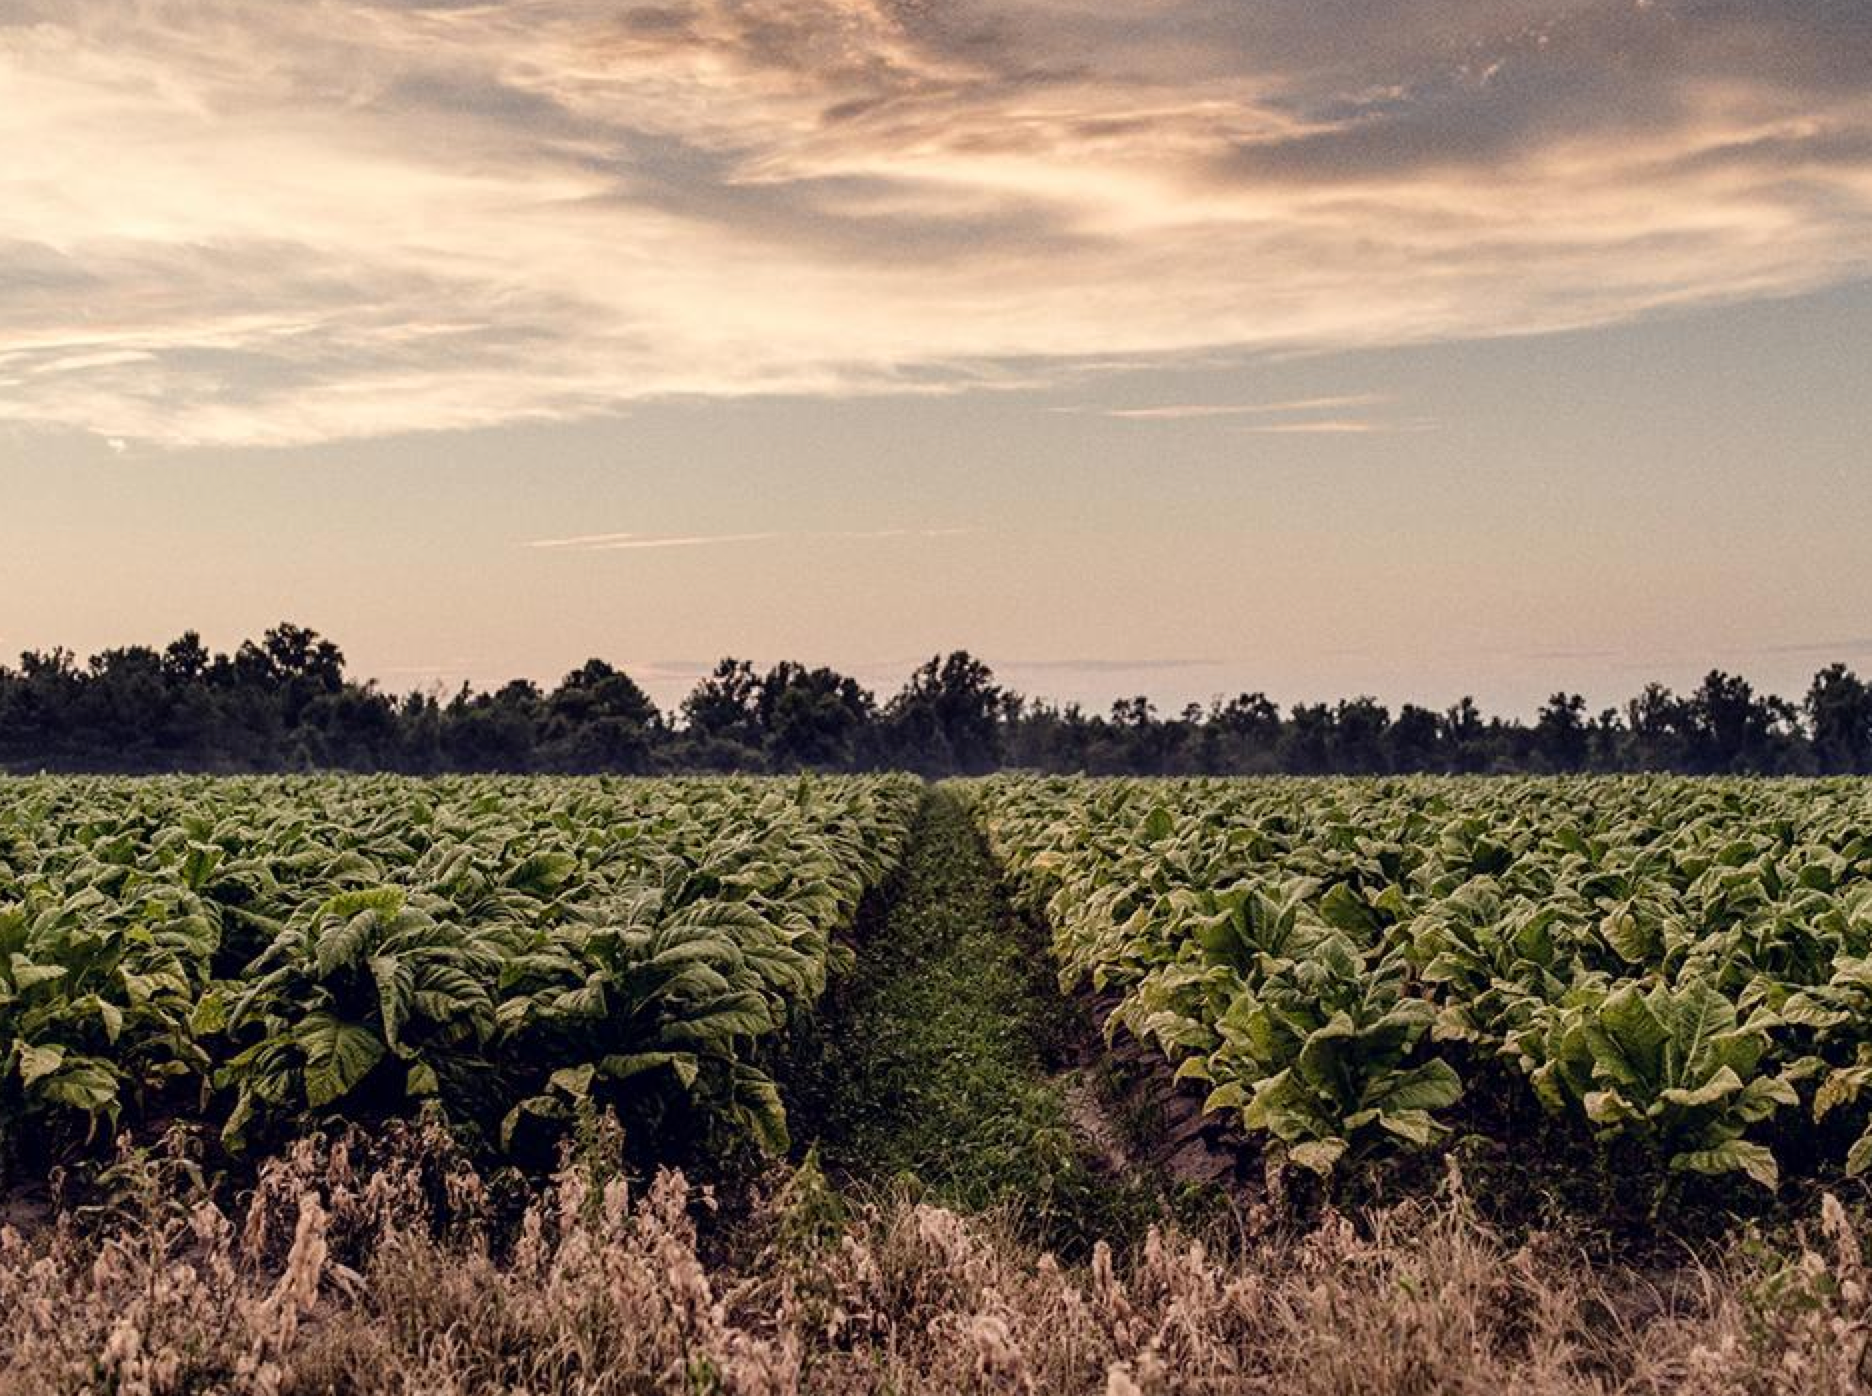 Tobacco Field, North Carolina © Benedict Evans for Human Rights Watch 2015